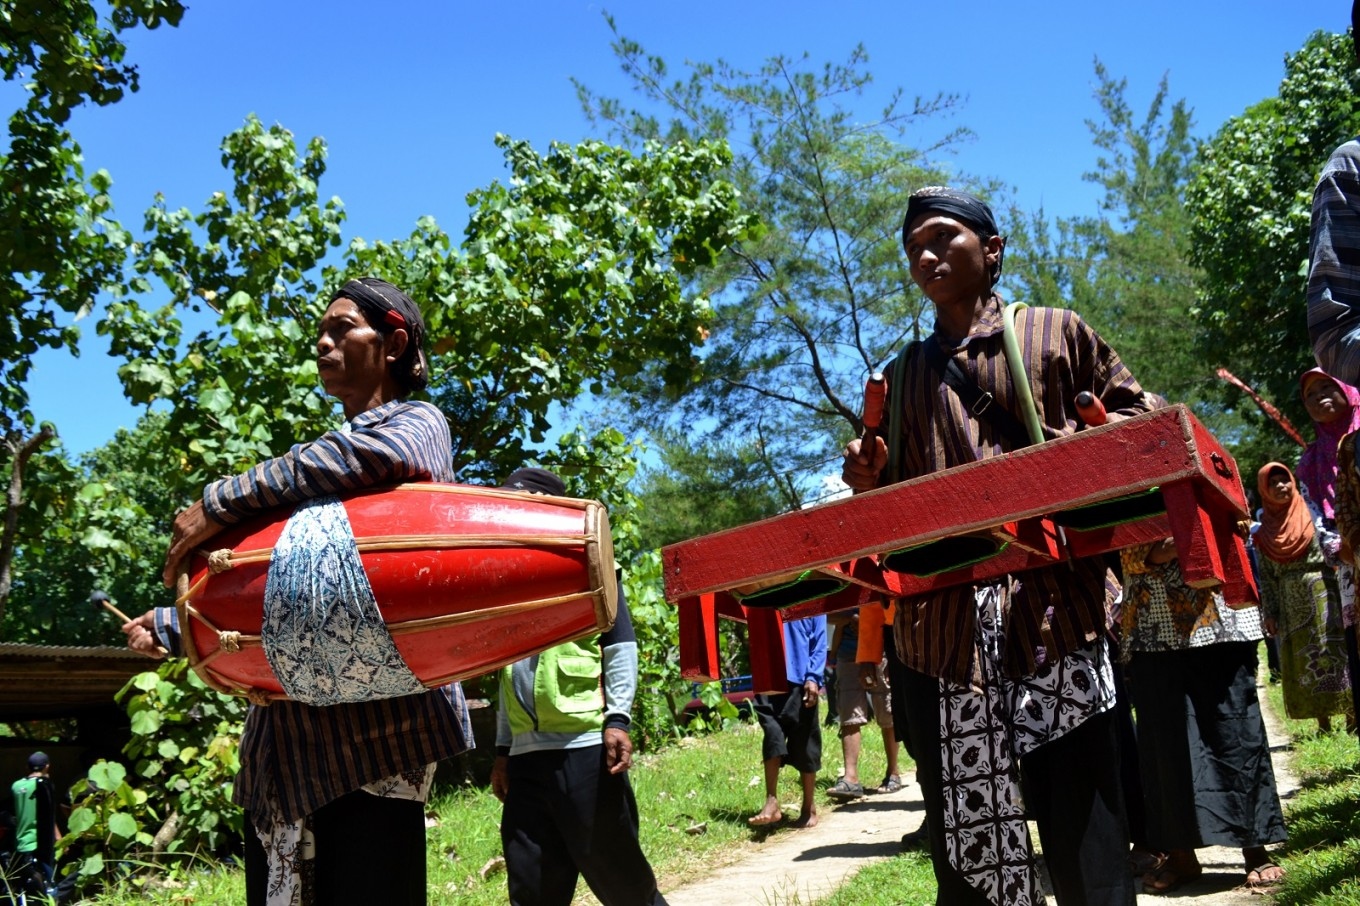 Villagers form a procession during the 'Sedekah Laut Ngalangi' ceremony to the accompaniment of 'bende' and 'kendang'.